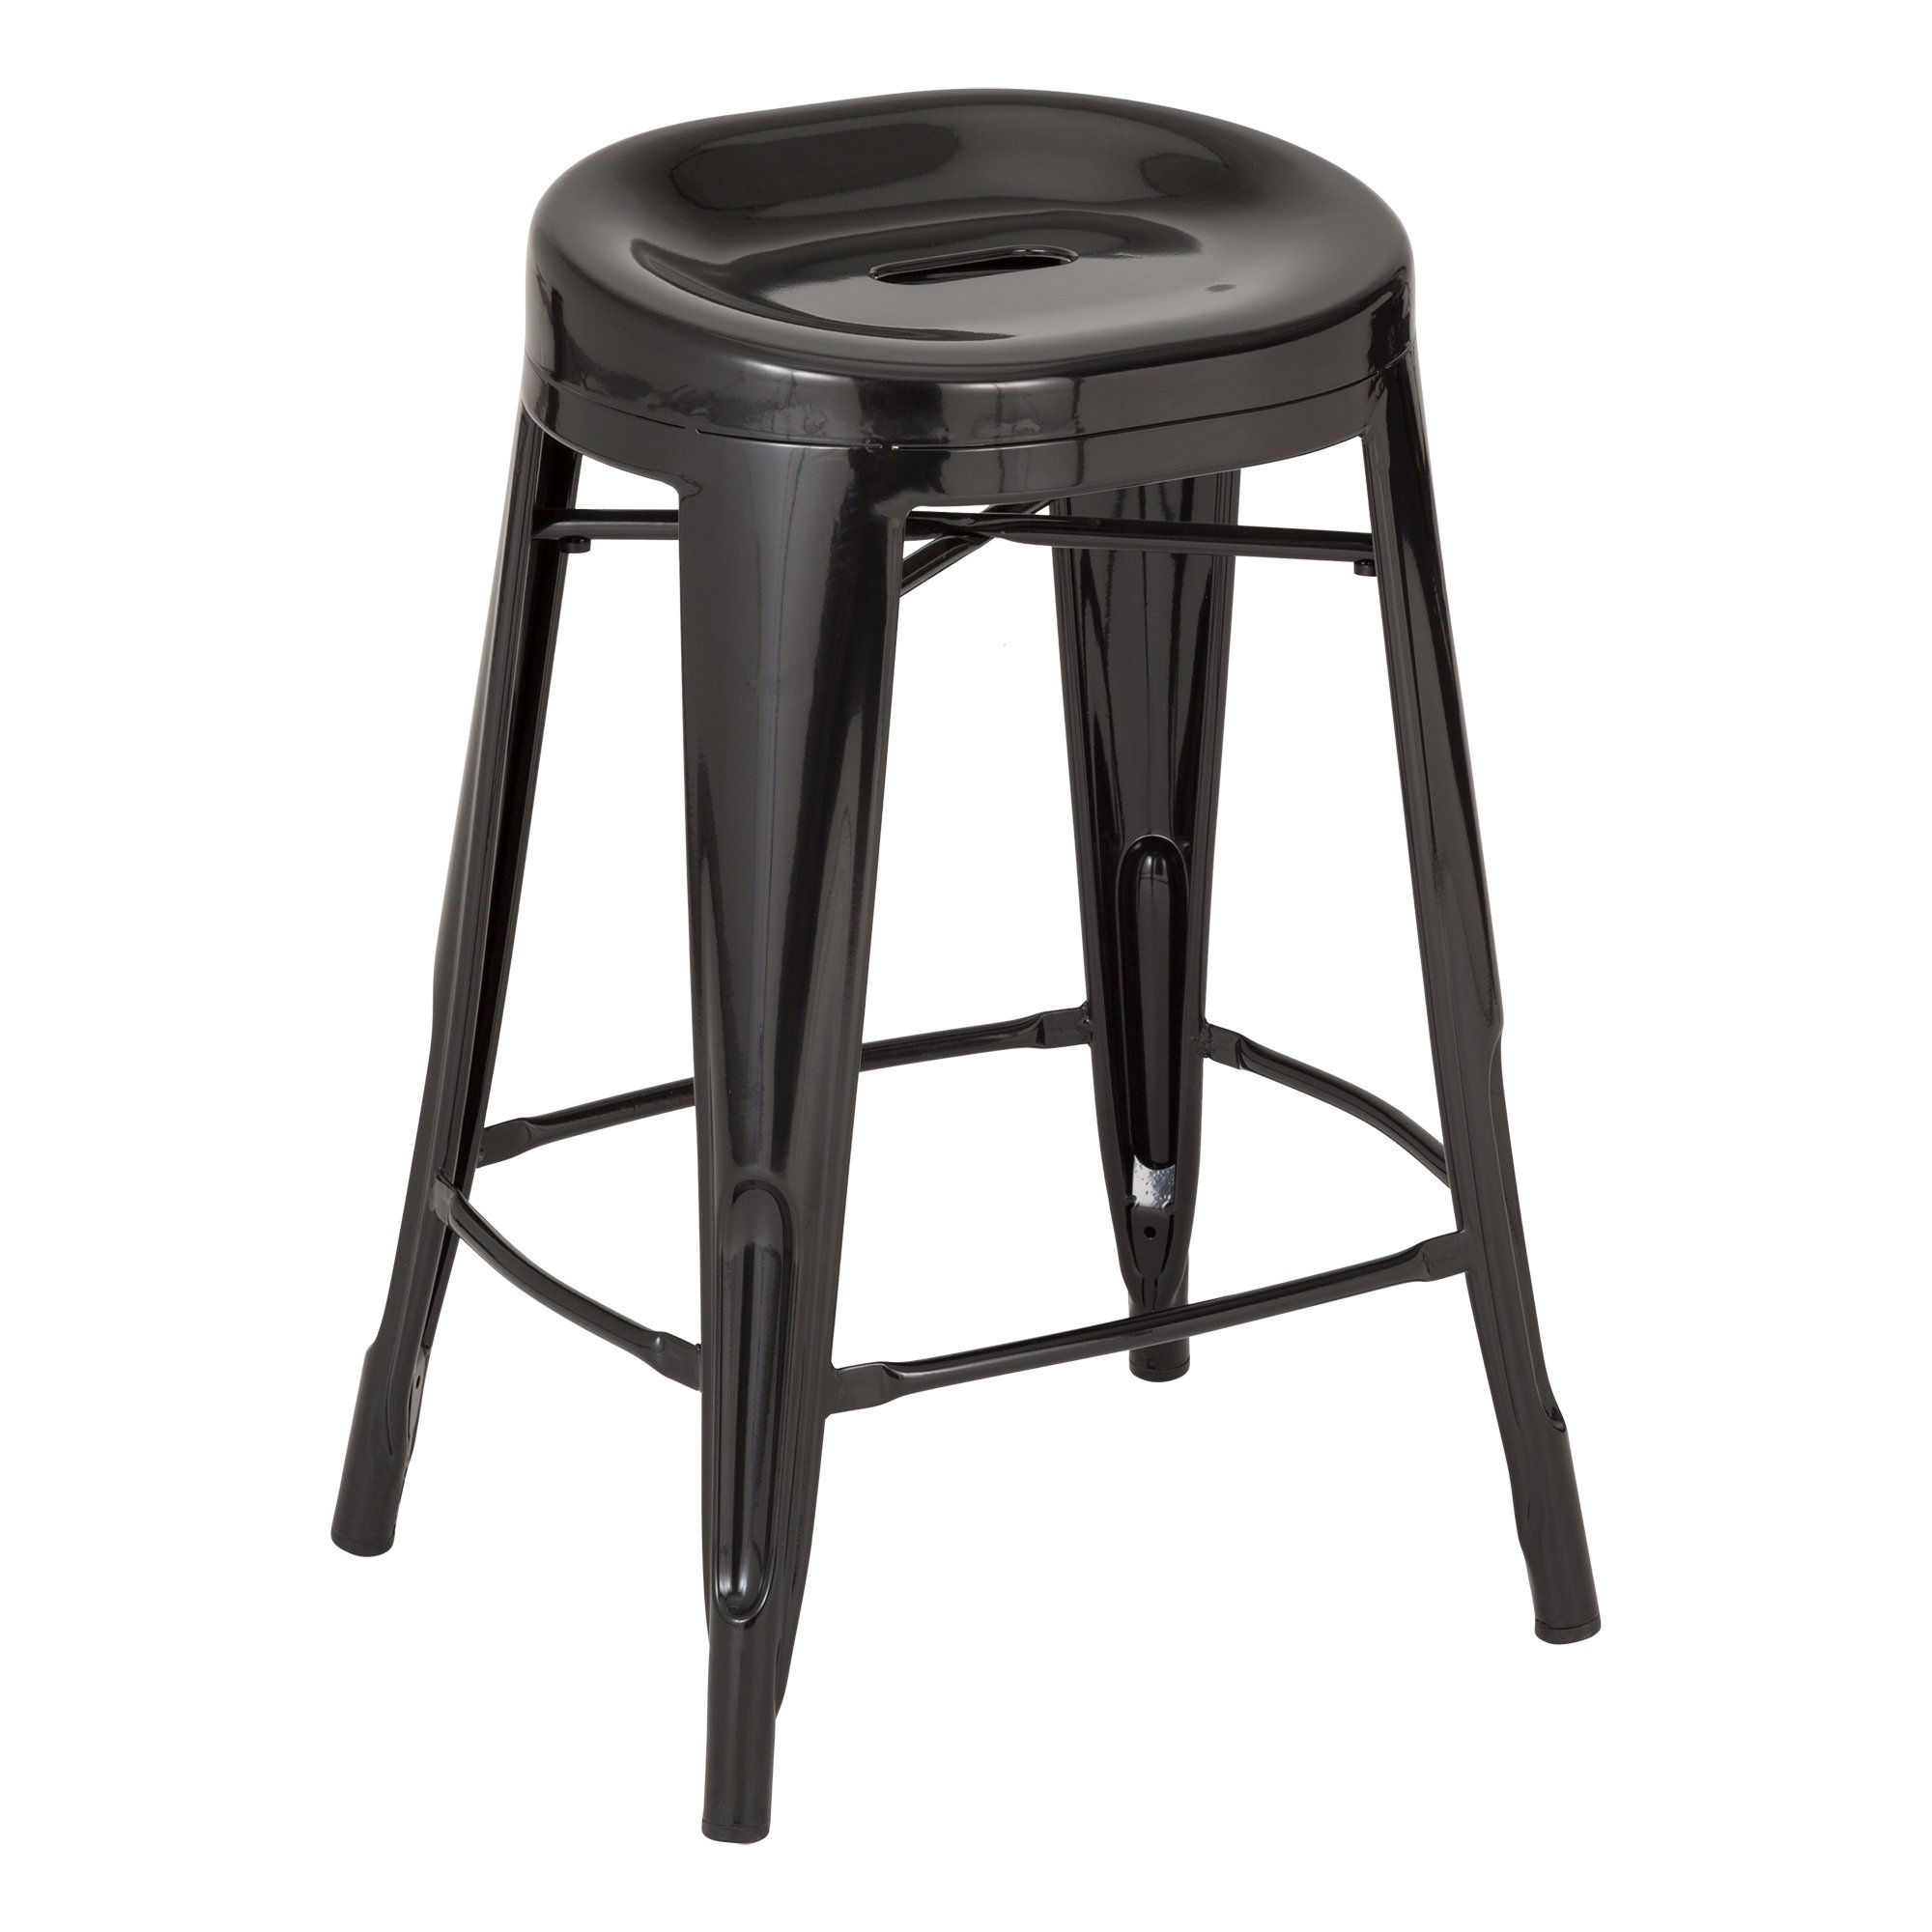 Fat Catalog ALT-XUW-1001BK Modern Industrial Metal Bar Stools w/ Curved Seat, 24'' Height, 14.2'' Wide, 17.32'' Length, Black (Pack of 2)